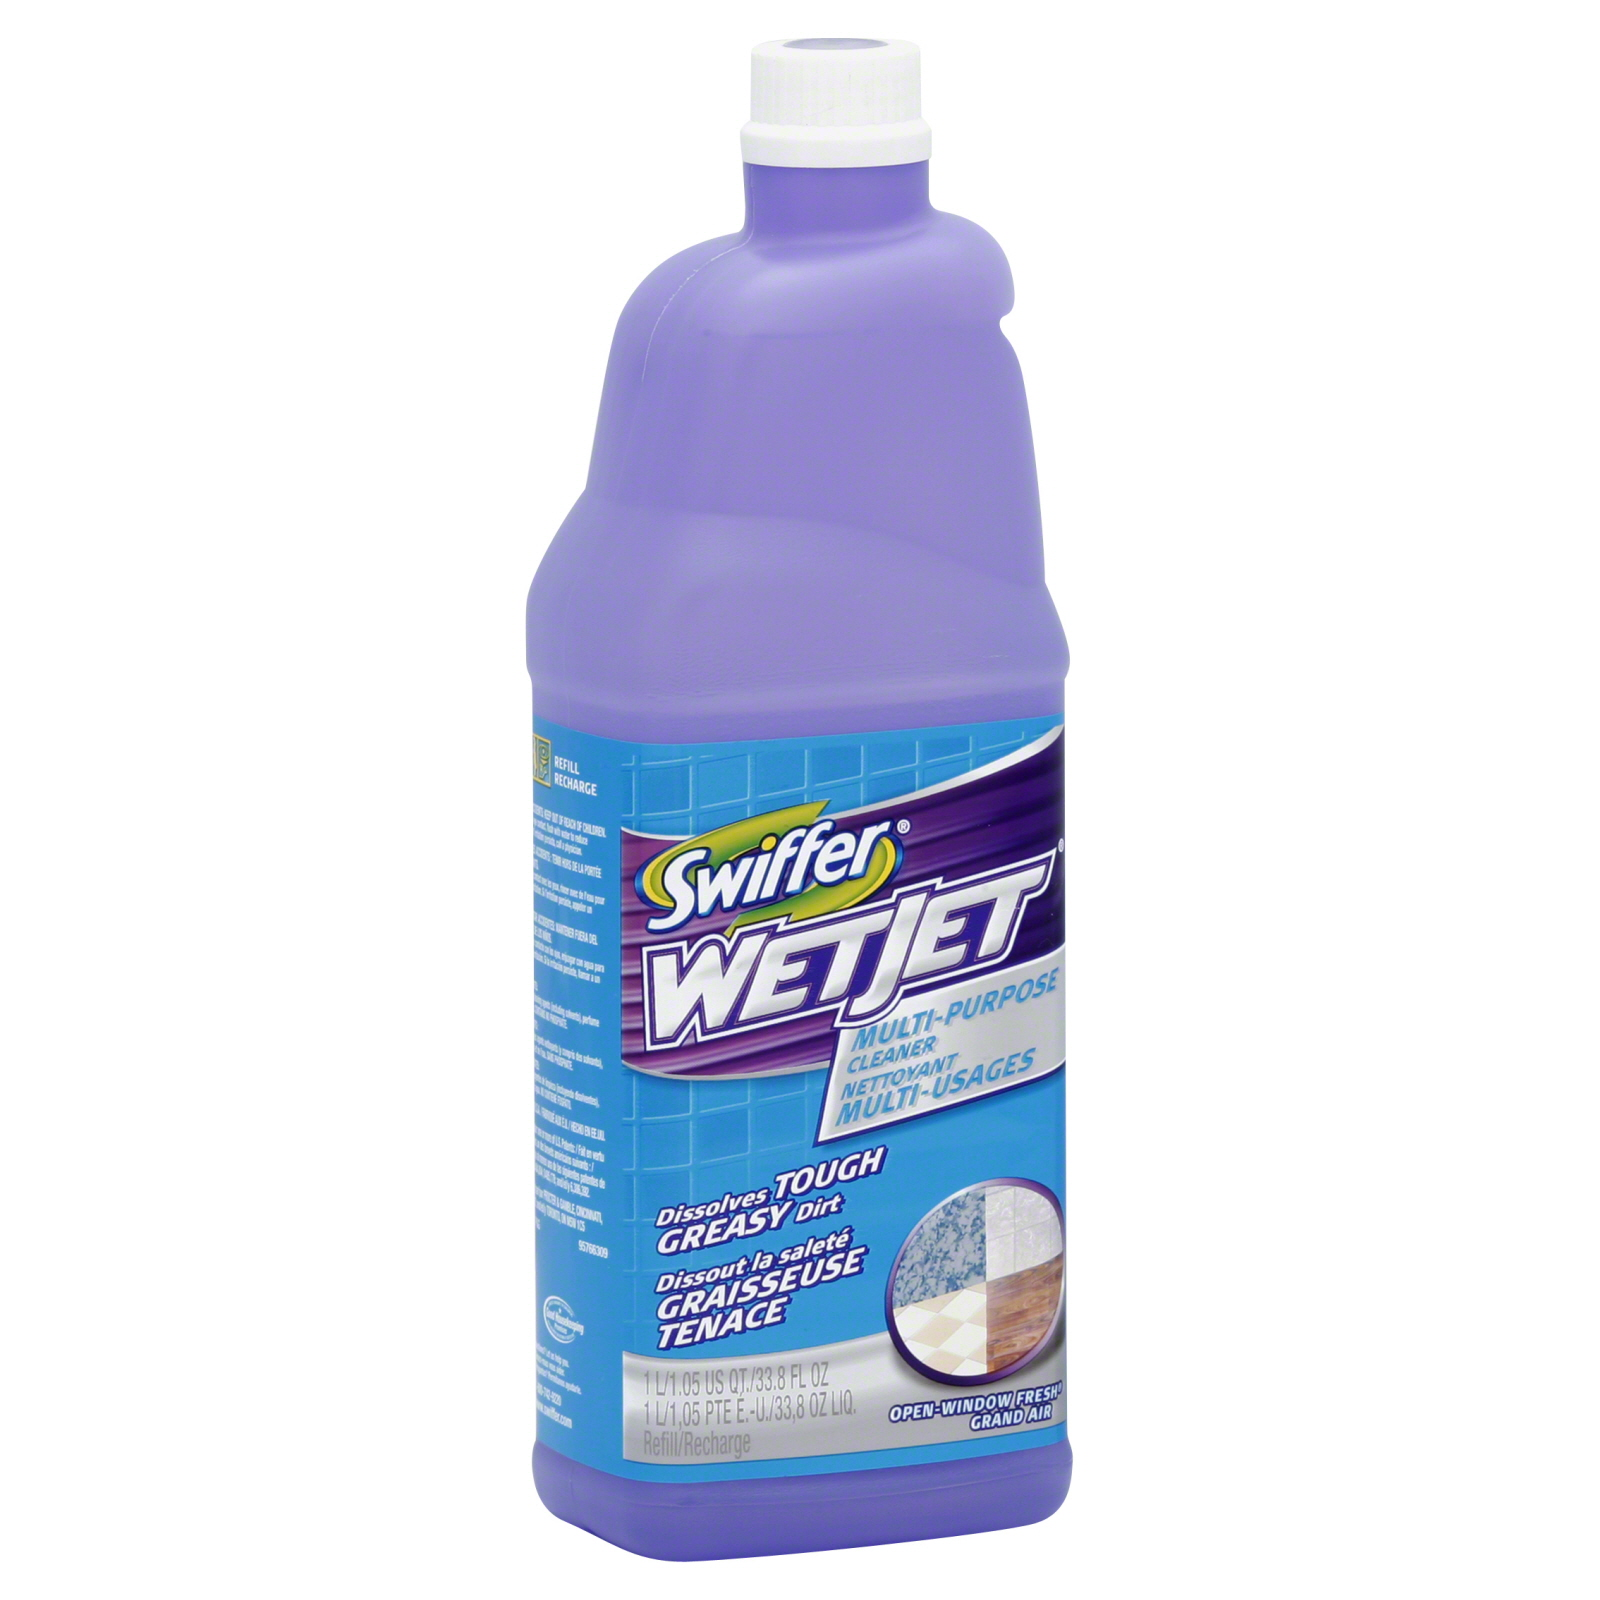 Swiffer Wetjet Multi Purpose Cleaner 33 8 Fl Oz 1 05 Qt